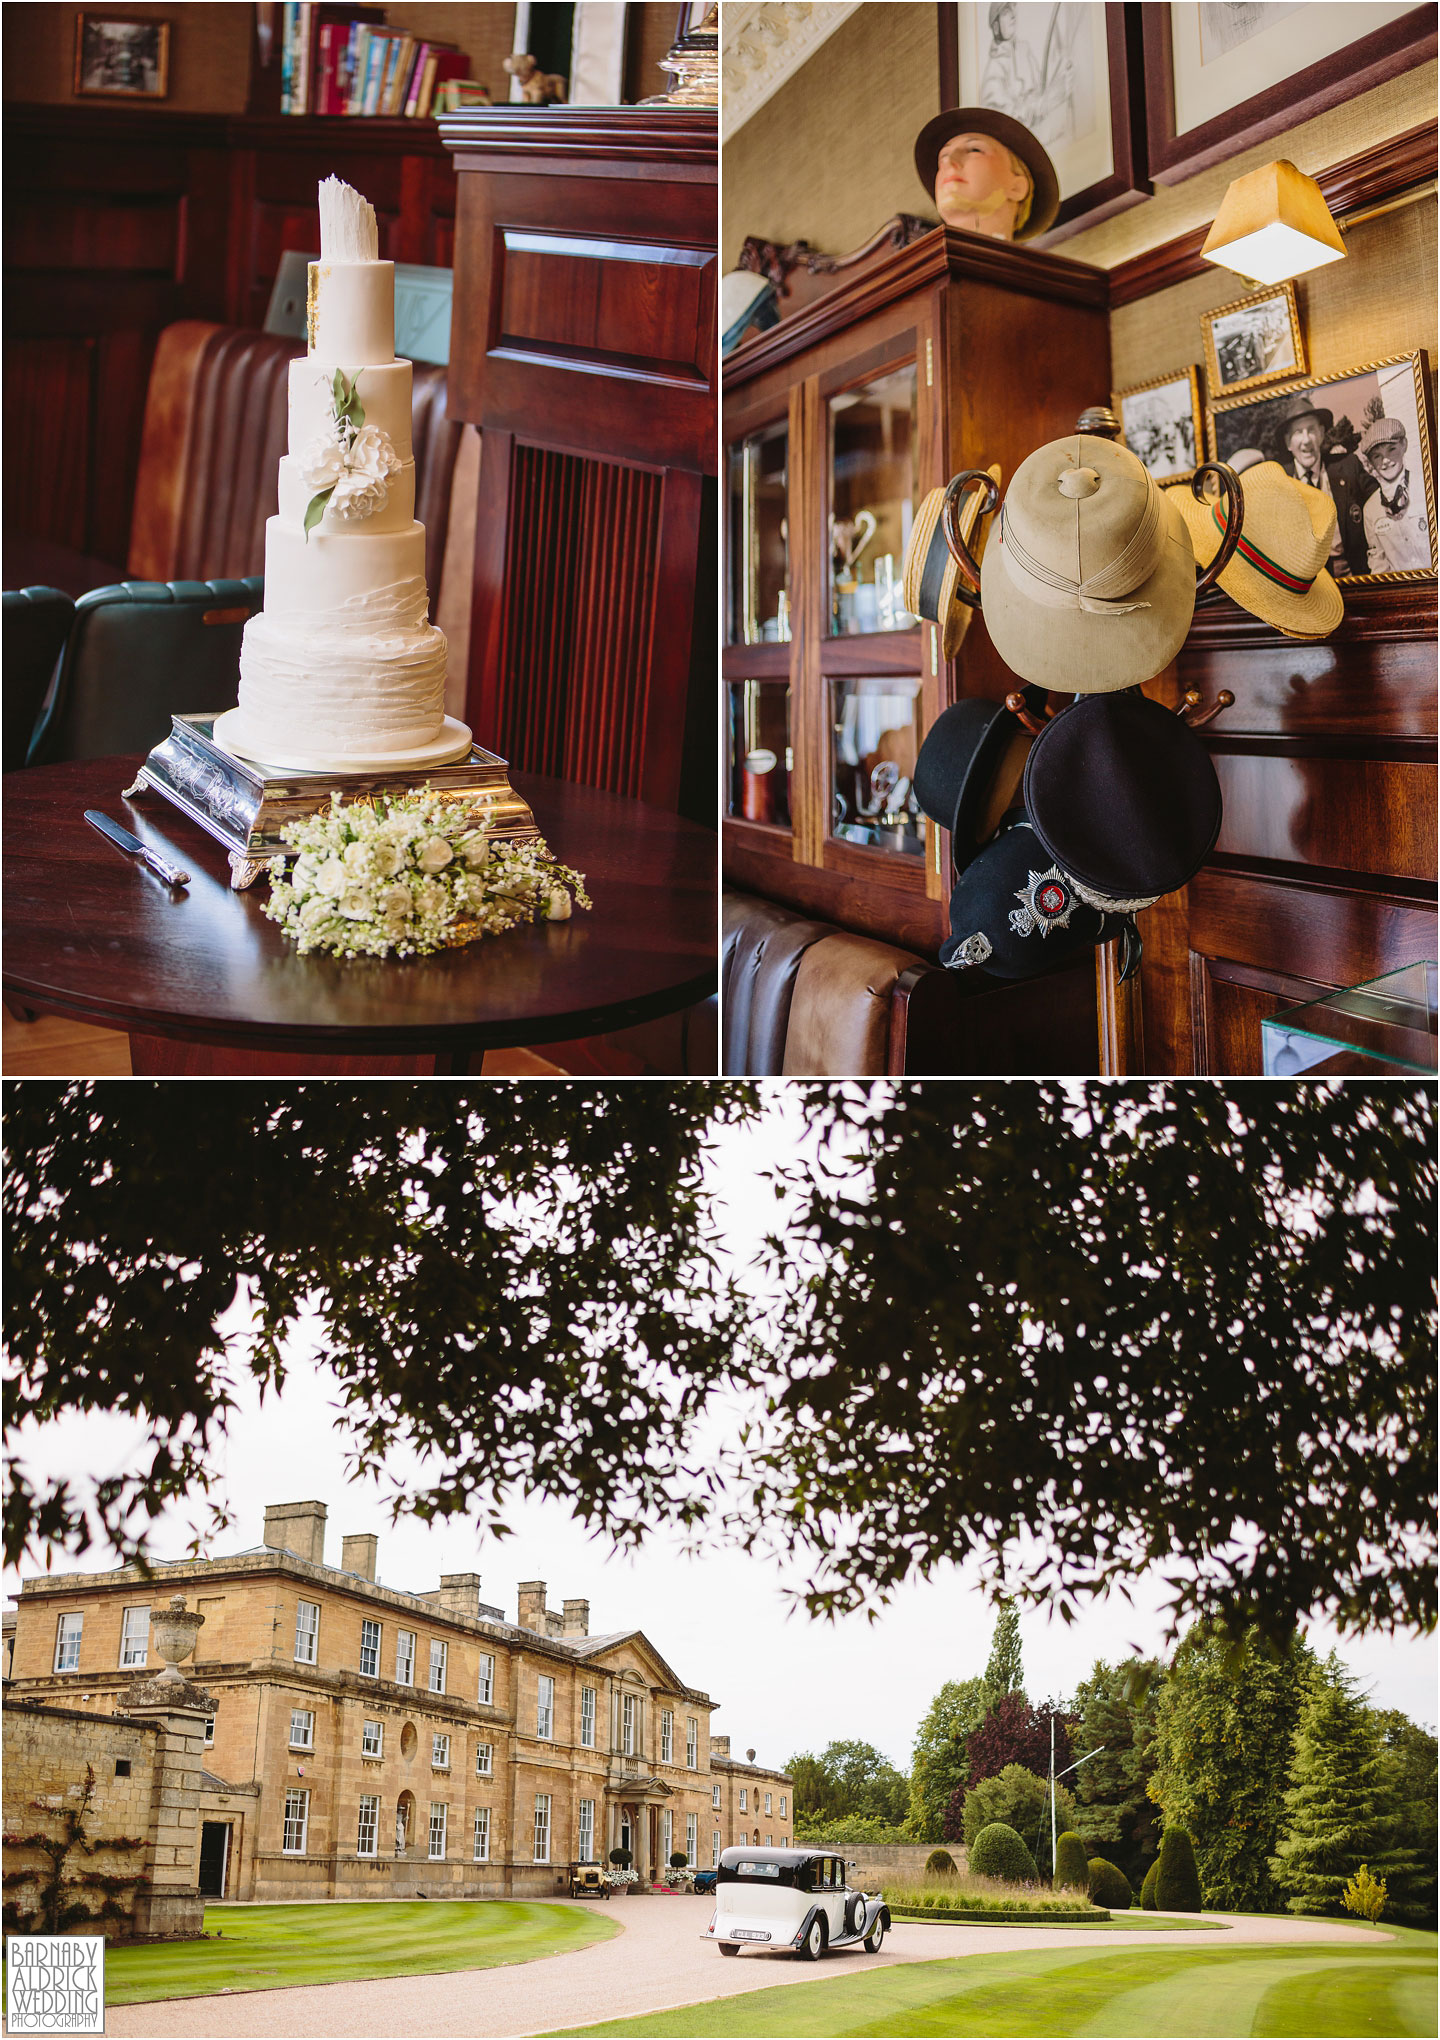 Bowcliffe Hall country house wedding details in Bramham in Yorkshire